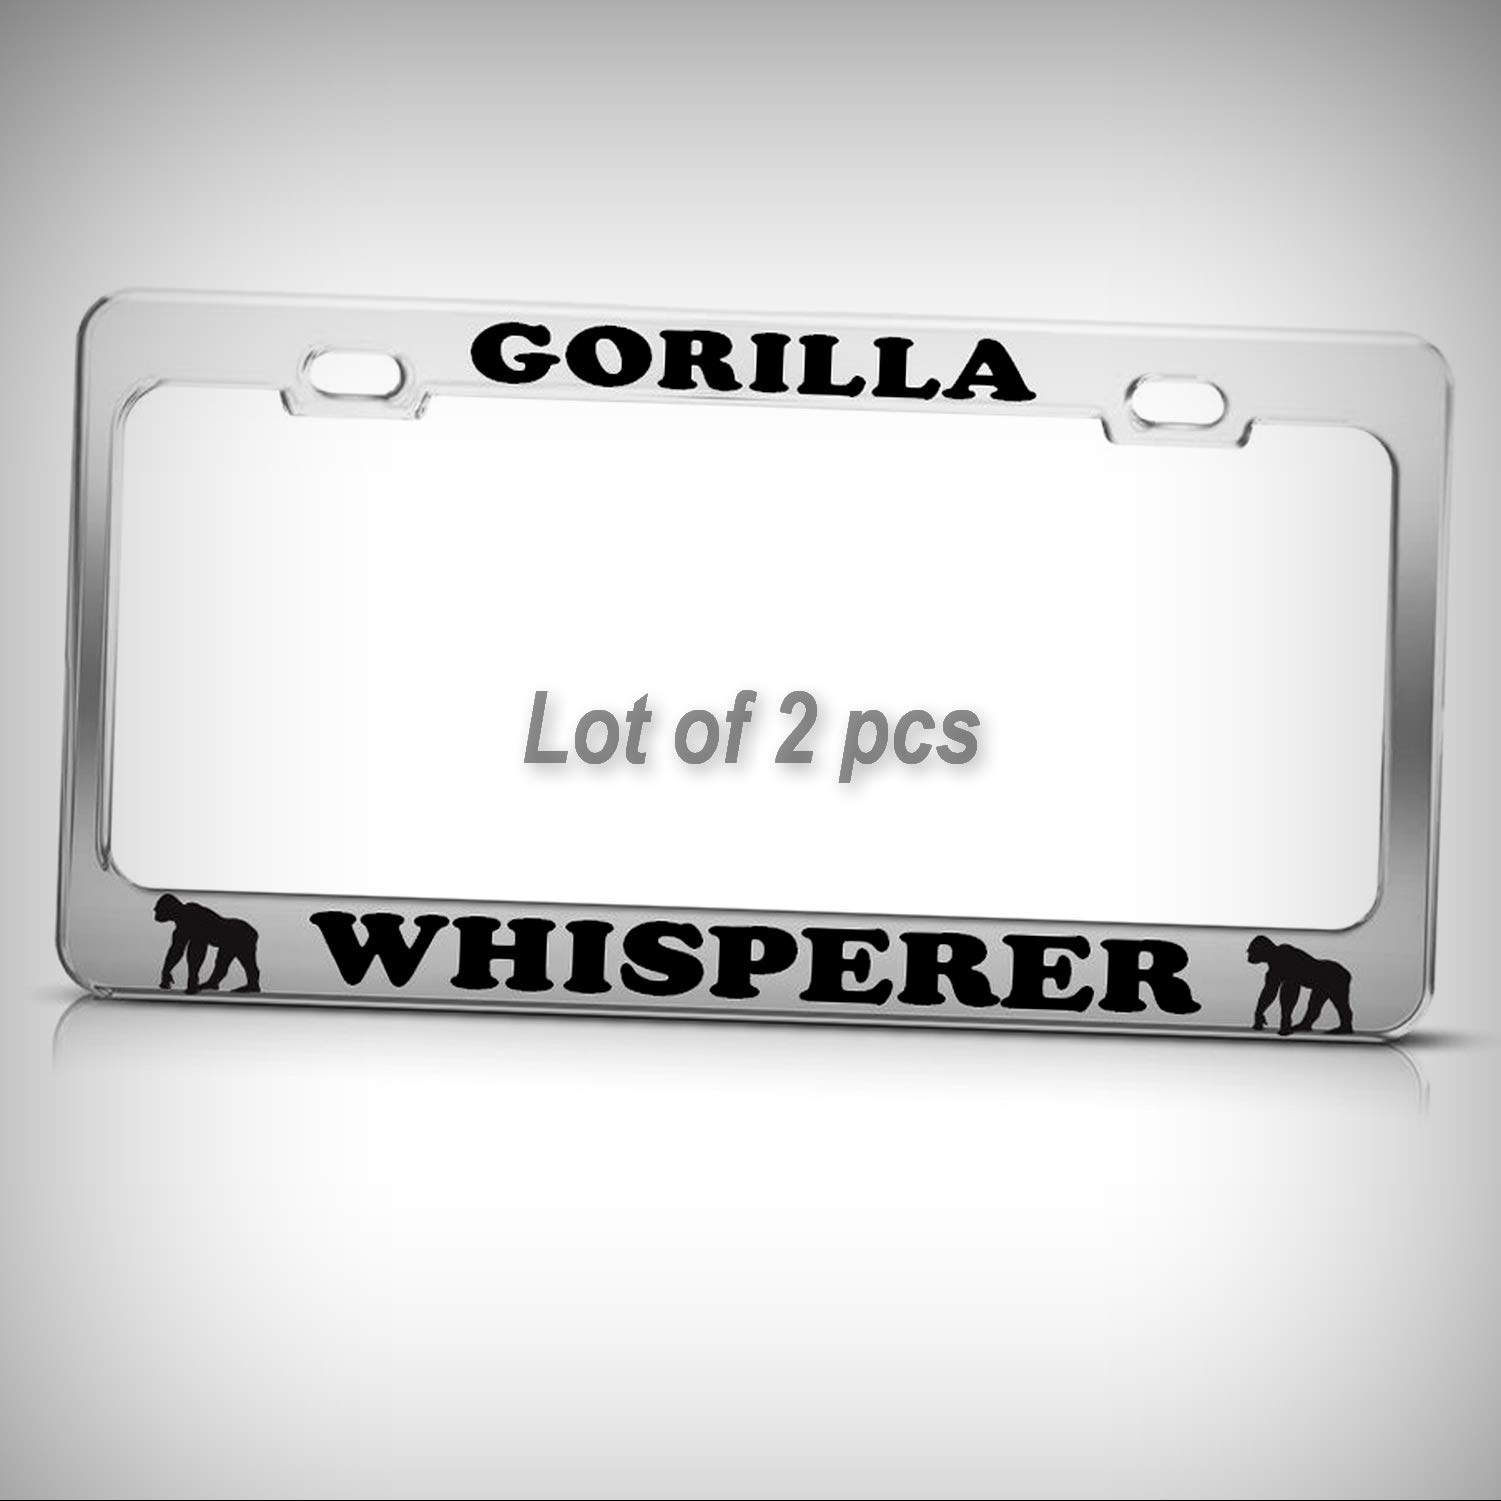 Set of 2 Pcs - Gorilla Whisperer Funny Heavy Duty Tag Holder License Plate Frame Decorative Border Fun Auto Tag